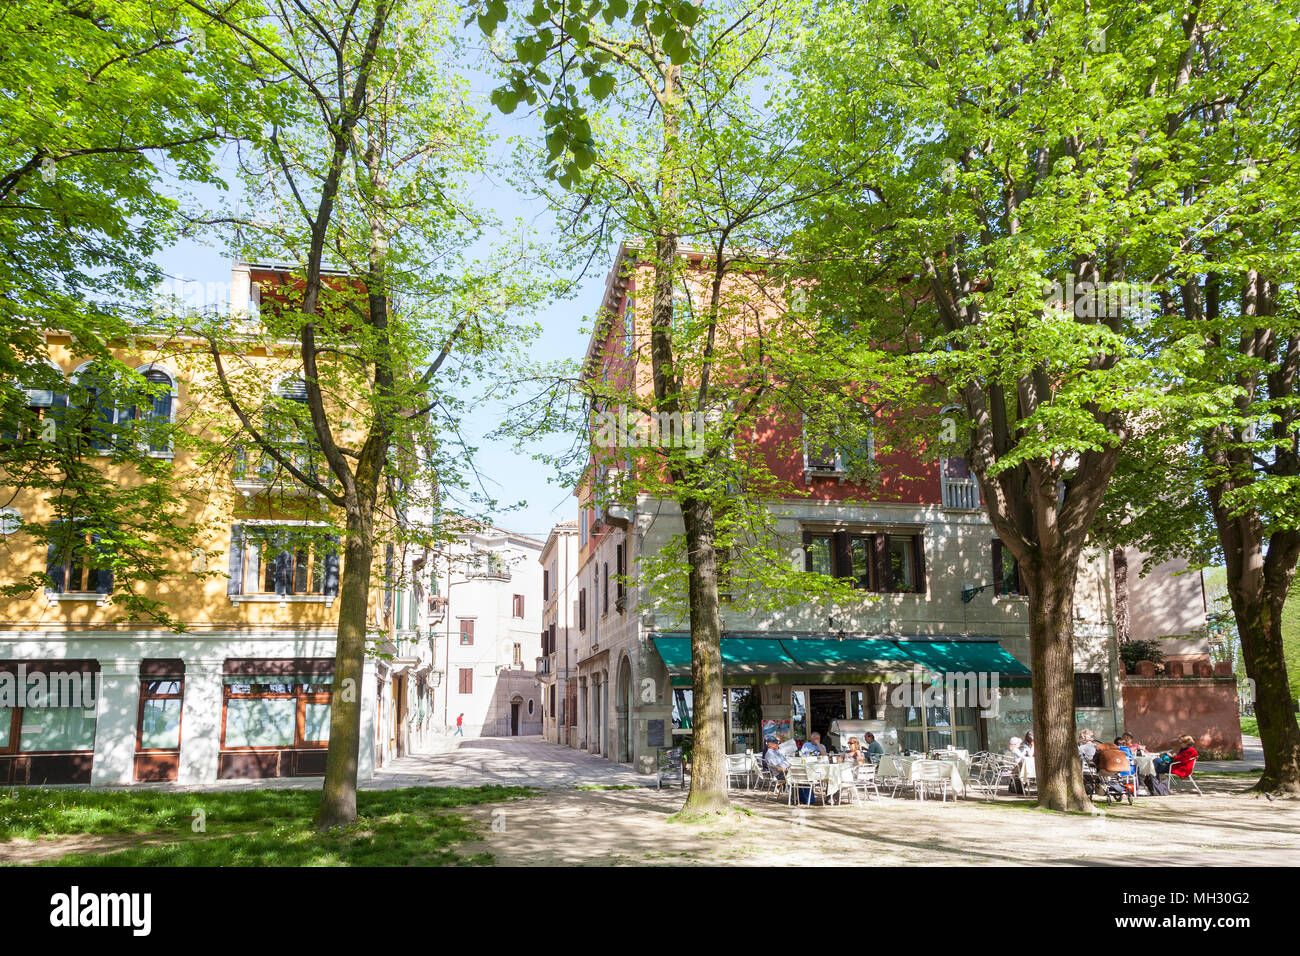 Spring in Venice. Fresh green trees in the Parco della Rimembranze along Viale 1V Novembre, Sant'Elena, Venice, Veneto, Italy, Open air retsaurant Stock Photo